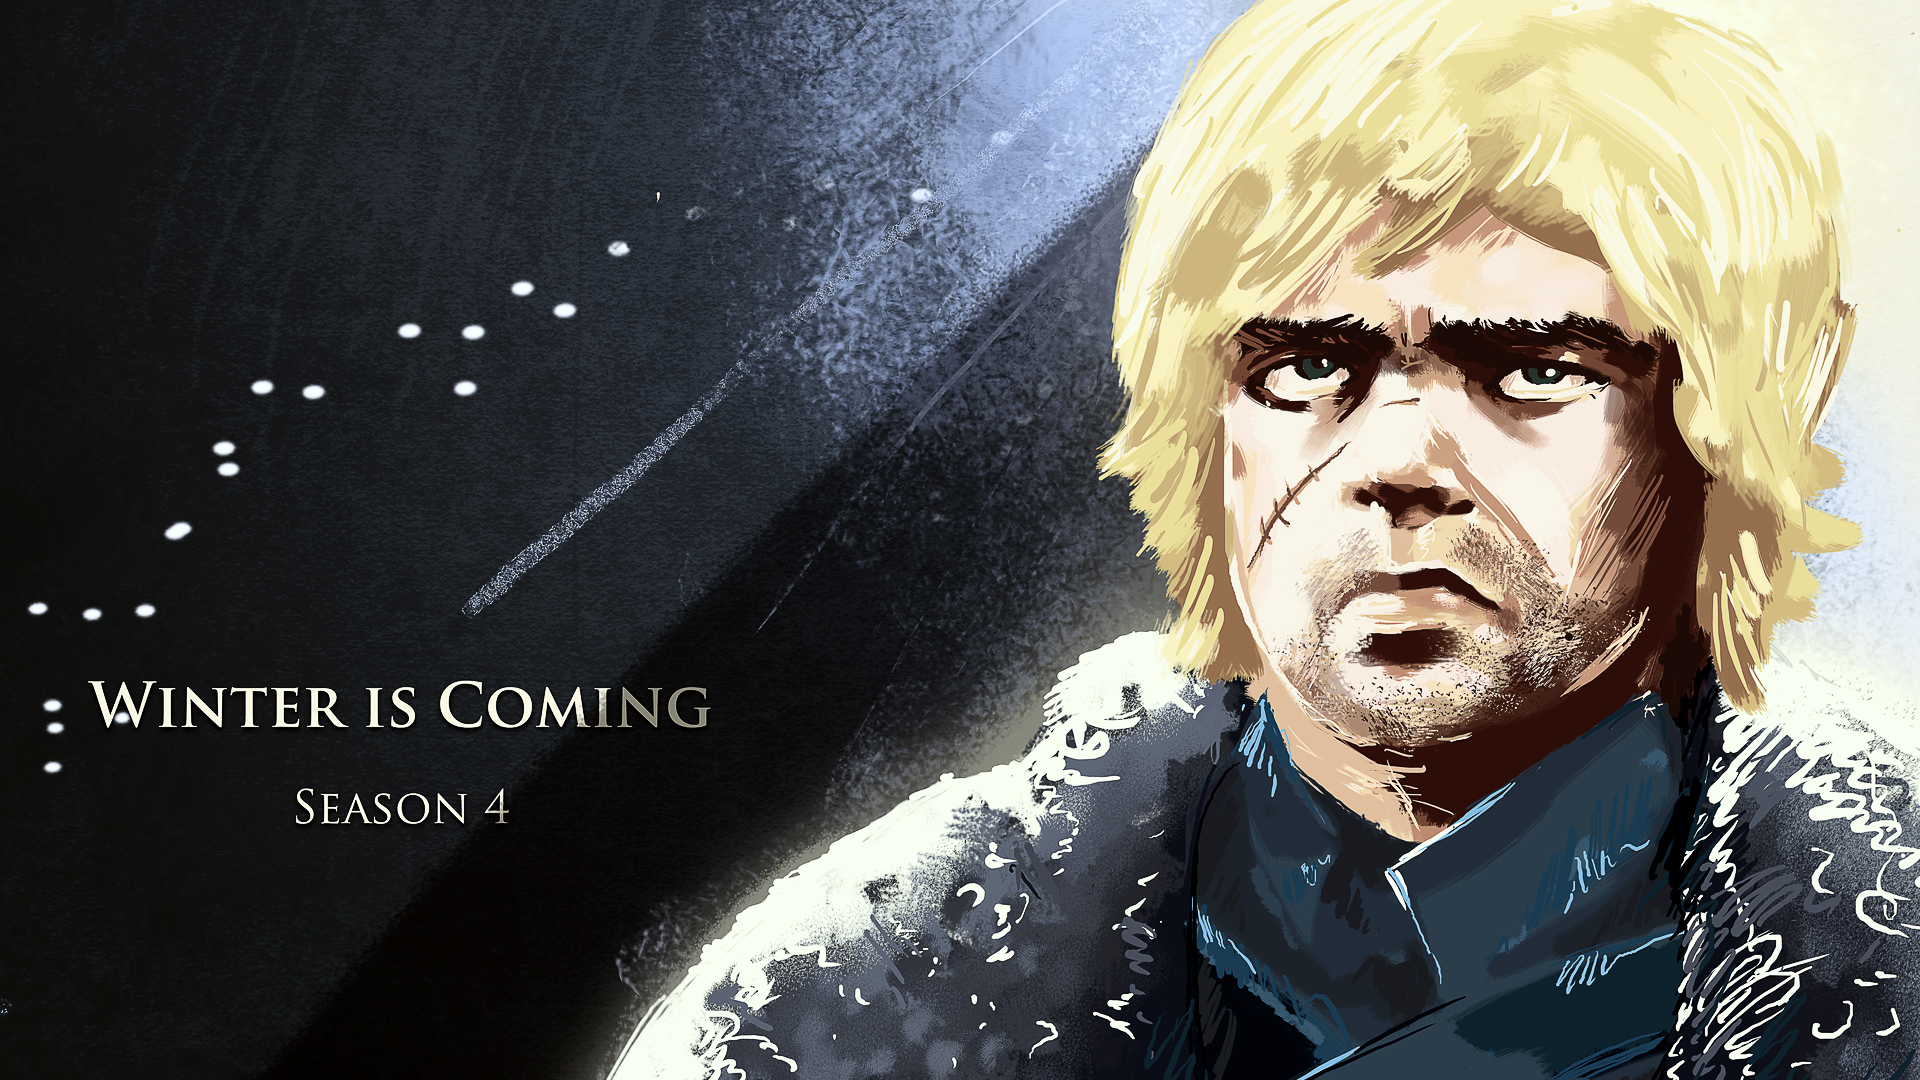 Game of Thrones Season 4 [1920 x 1080] fc06deviantartnet 1920x1080